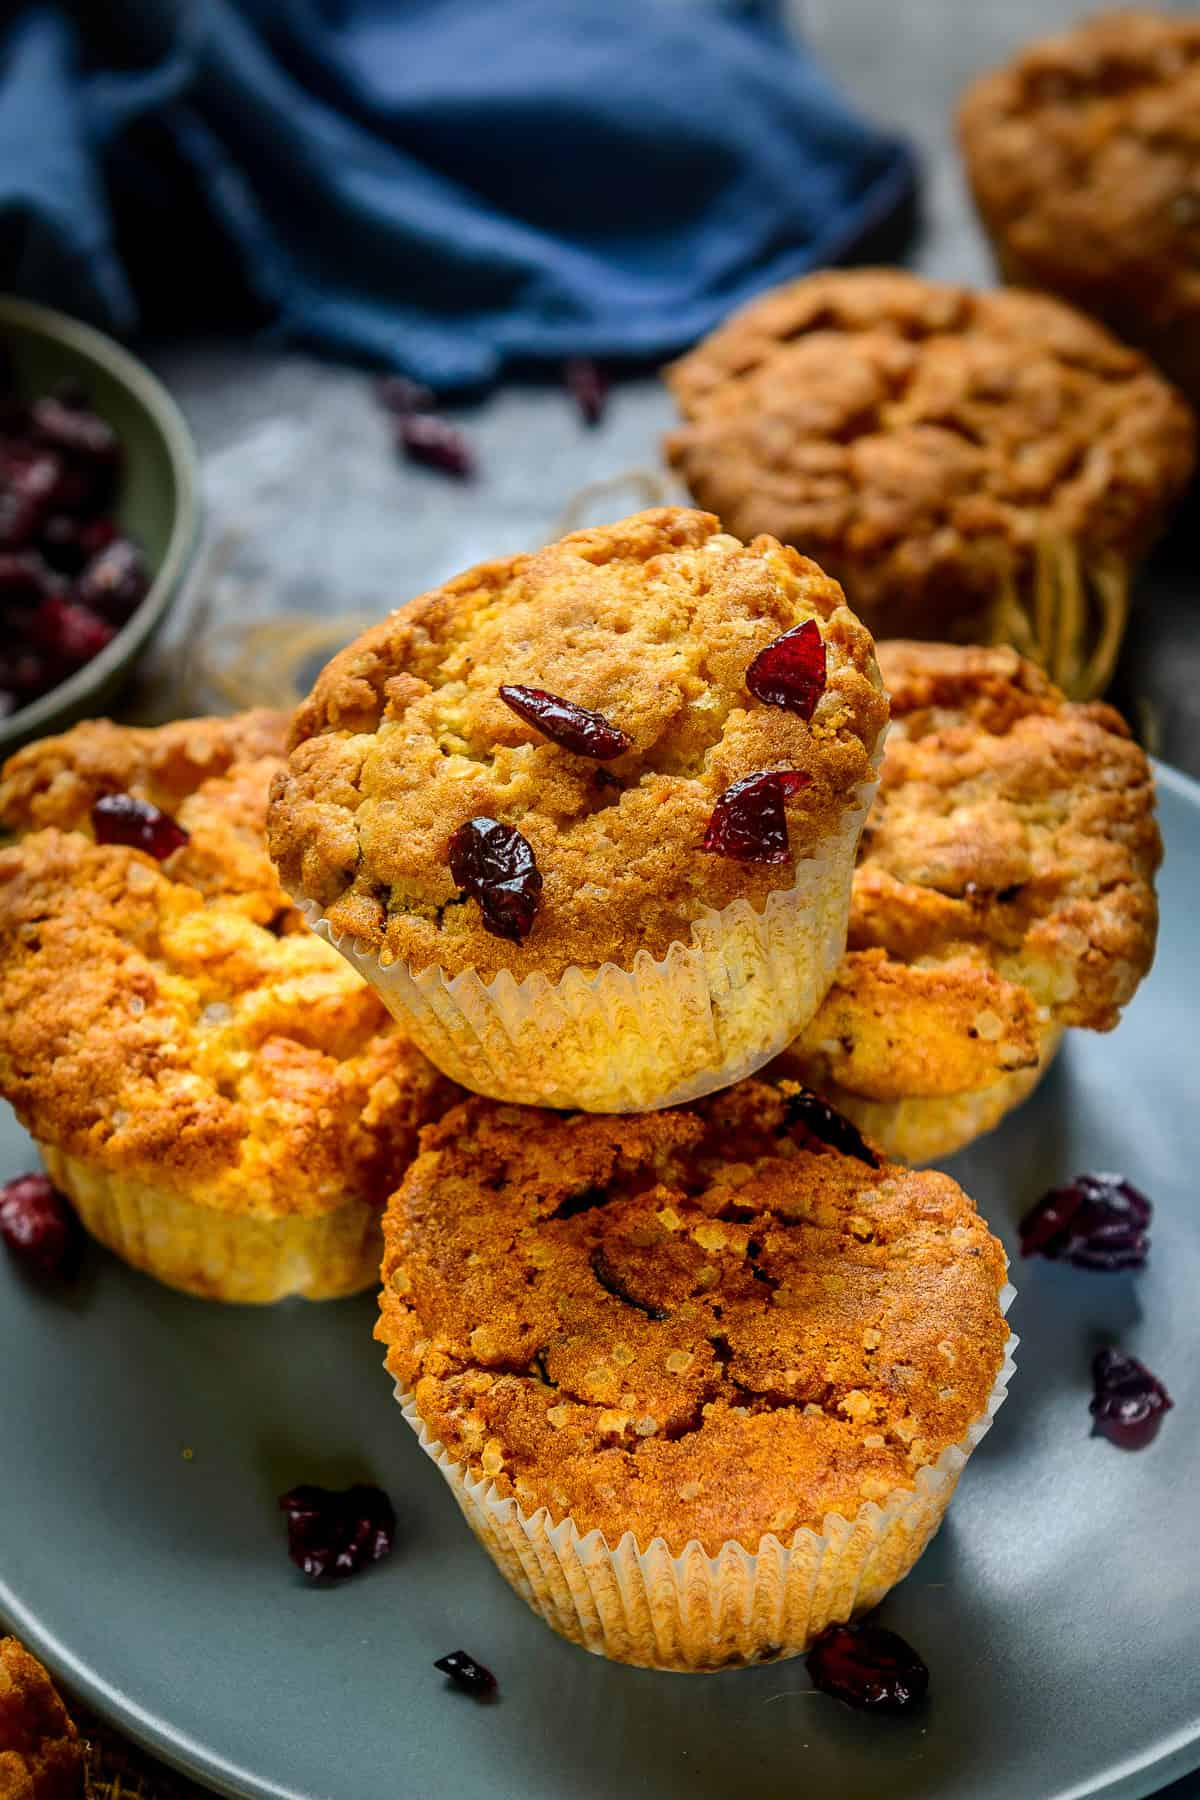 Cranberry Muffins served on a plate.